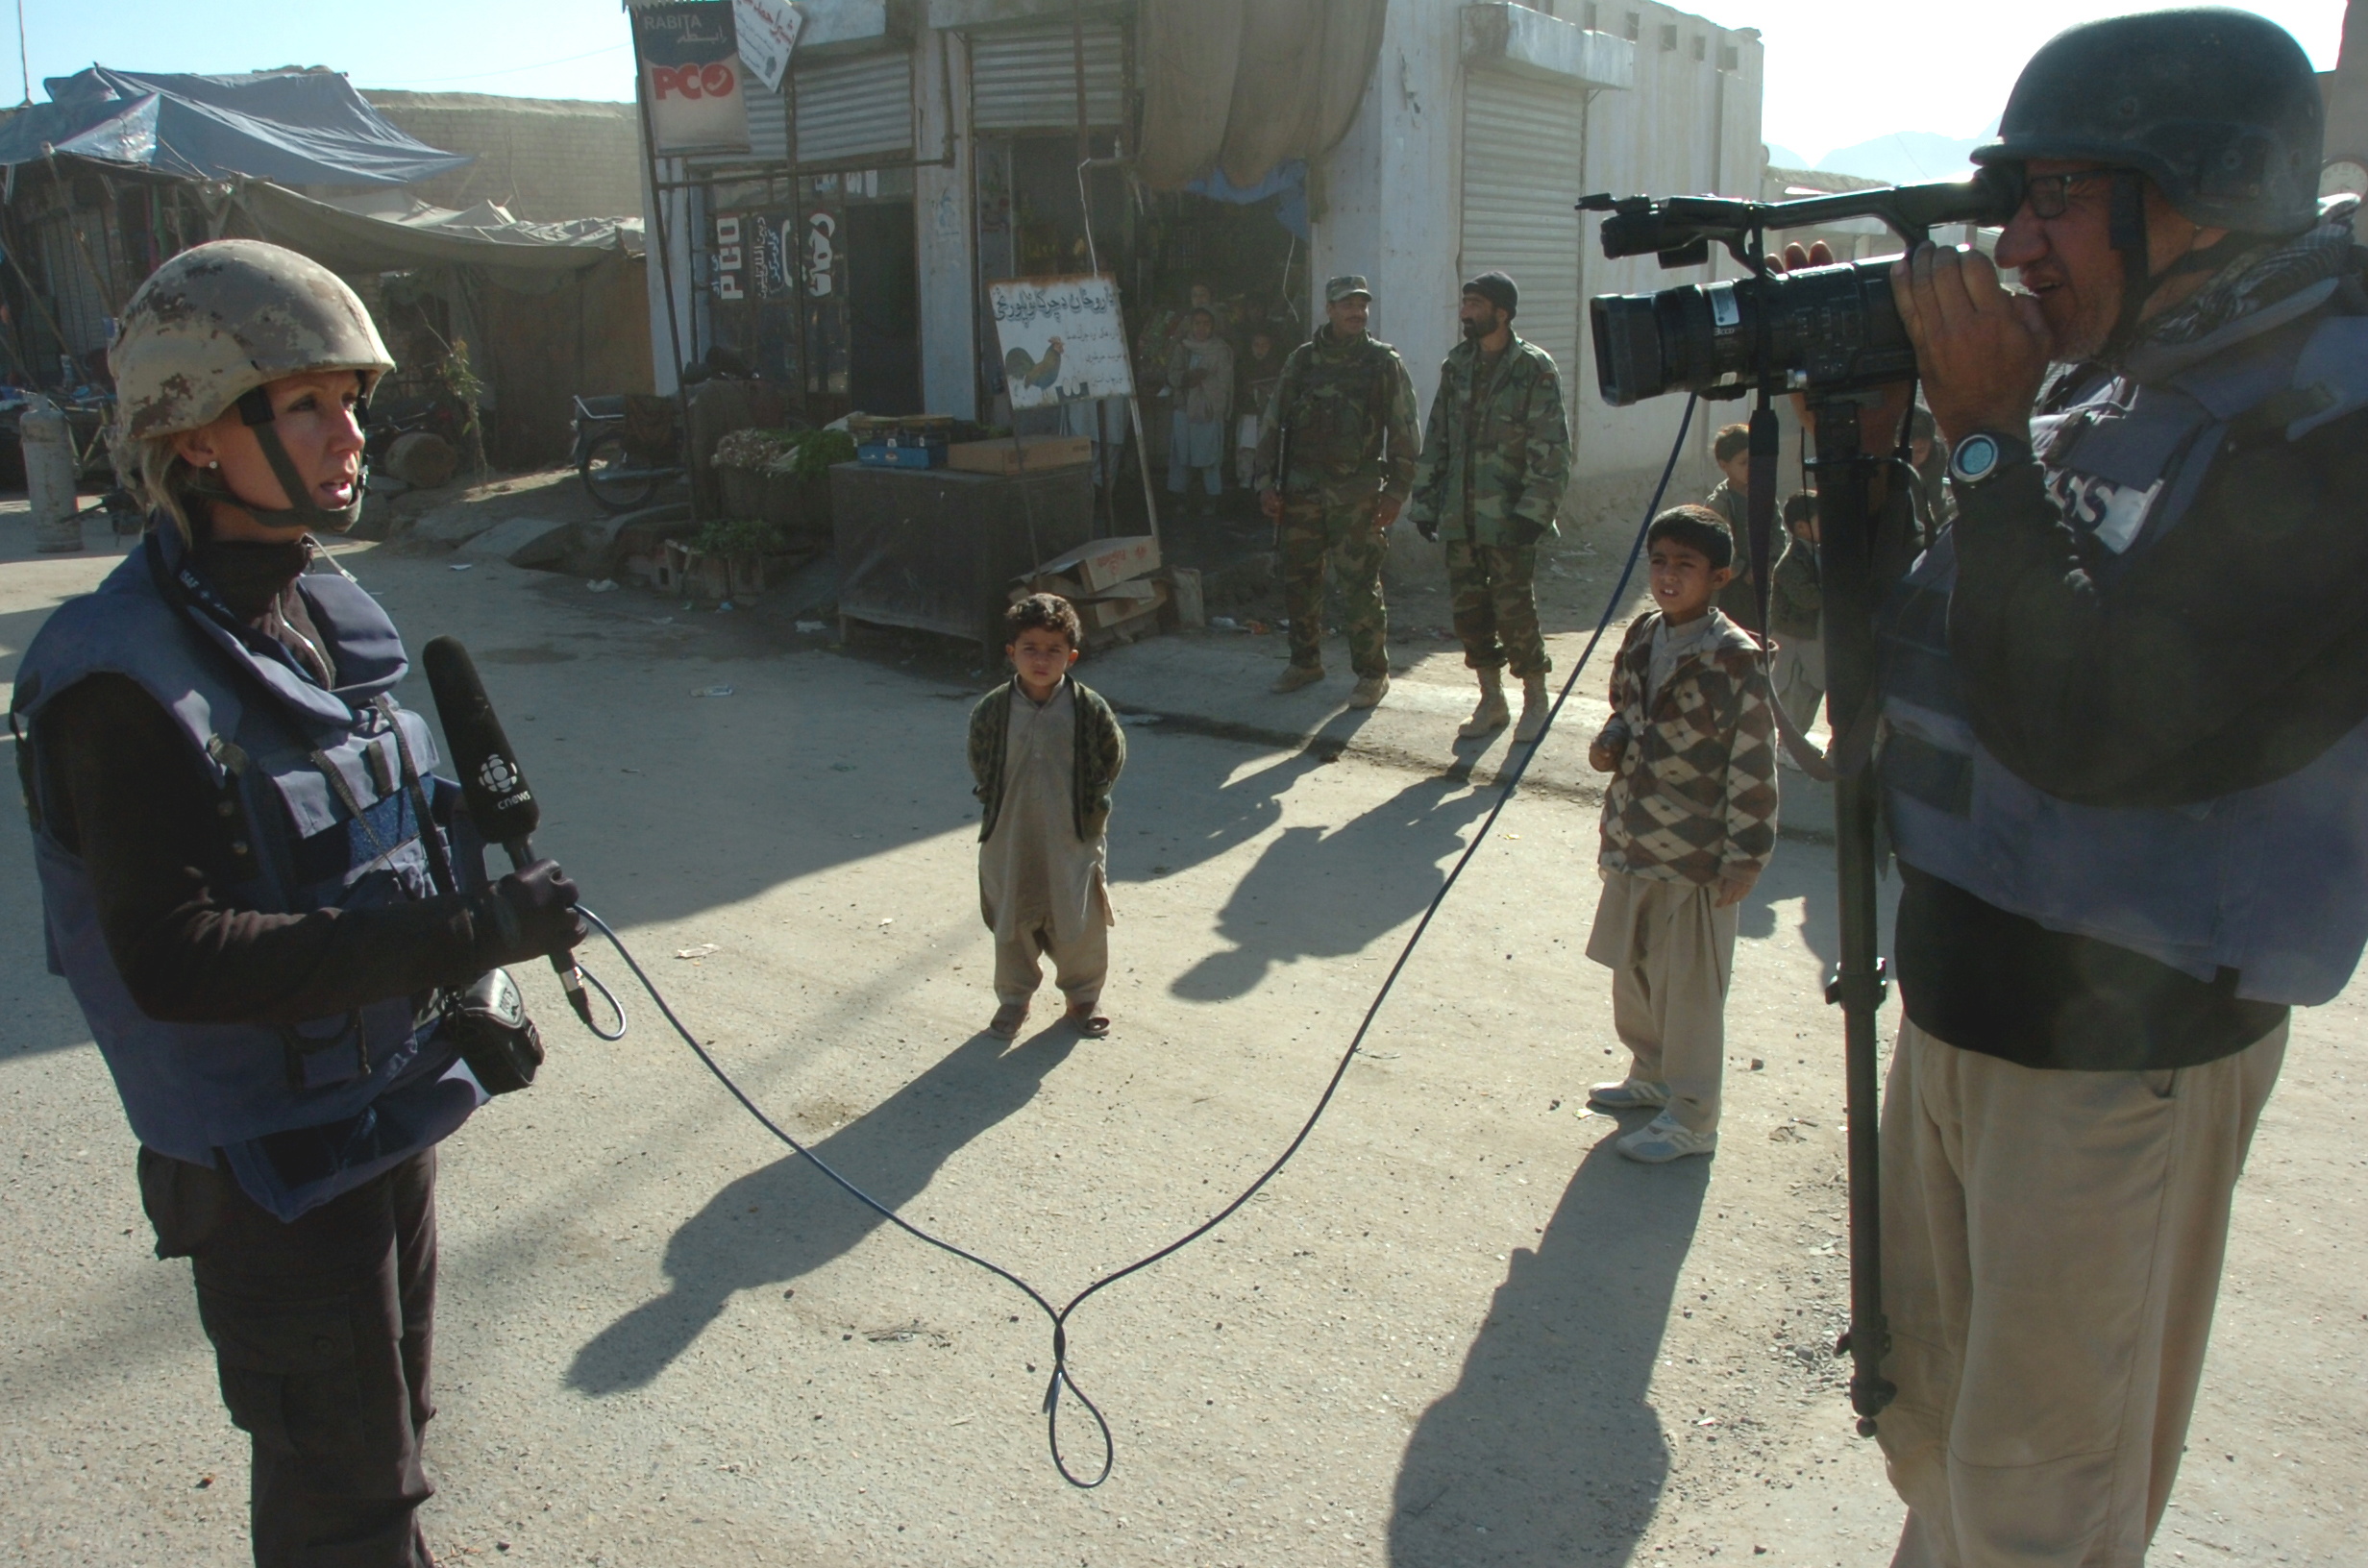 English/Anglais AR2006-S002-0048 December 19, 2006  Kandahar, Afghanistan Reporter Laurie Graham and Cameraman Al Lawrence of the Canadian Broadcasting Corporation (CBC) do an 'on camera' on the main street of Bazaar-e-Panjwaii while two local boys watch with fascination.  CBC joined a Civilian Military Cooperation (CIMIC) Patrol through the streets of Bazaar-e-Panjwaii.  The patrol originated at the gates of Forward Operating Base Ma'Sum Ghar and ended two kilometers east at an Afghan National Army Checkpoint.  Its purpose was to gauge the mood of the town and to do quick assessments of the population.  Joint Task Force Afghanistan (JTF-Afg) is Canada's contribution to NATO's International Security Assistance Force (ISAF) in Afghanistan. The focus of this mission is to help Afghans rebuild their lives, families, communities and nation.  Canadian Forces personnel in Afghanistan are working to improve the quality of life of Afghans by providing a more secure environment in which Afghan society can recover from more than 25 years of conflict. The Canadian Forces (CF) contribution in Afghanistan comprises about 2,500 soldiers, most of who serve in Kandahar province with a smaller number of personnel assigned to Kabul, various military headquarters, and civilian organizations.  Photo By:  Capt Edward Stewart JTF-AFG Op ATHENA Roto 2 1 RCR BG PAO French/Français AR2006-S002-0048 19 décembre 2006  Kandahar (Afghanistan) Le caméraman de la Société Radio-Canada (SRC), Al Lawrence, en compagnie de la journaliste Laurie Graham, filme la rue principale de Bazaar-e-Panjwaii sous le regard curieux de deux garçons du pays. Des employés de la SRC ont suivi une patrouille de coopération civilo-militaire (COCIM) dans les rues de Bazaar-e-Panjwaii. La patrouille partait des barrières de la base d'opérations avancée Ma'Sum Ghar et se rendait jusqu'à un point de contrôle de l'Armée nationale afgh